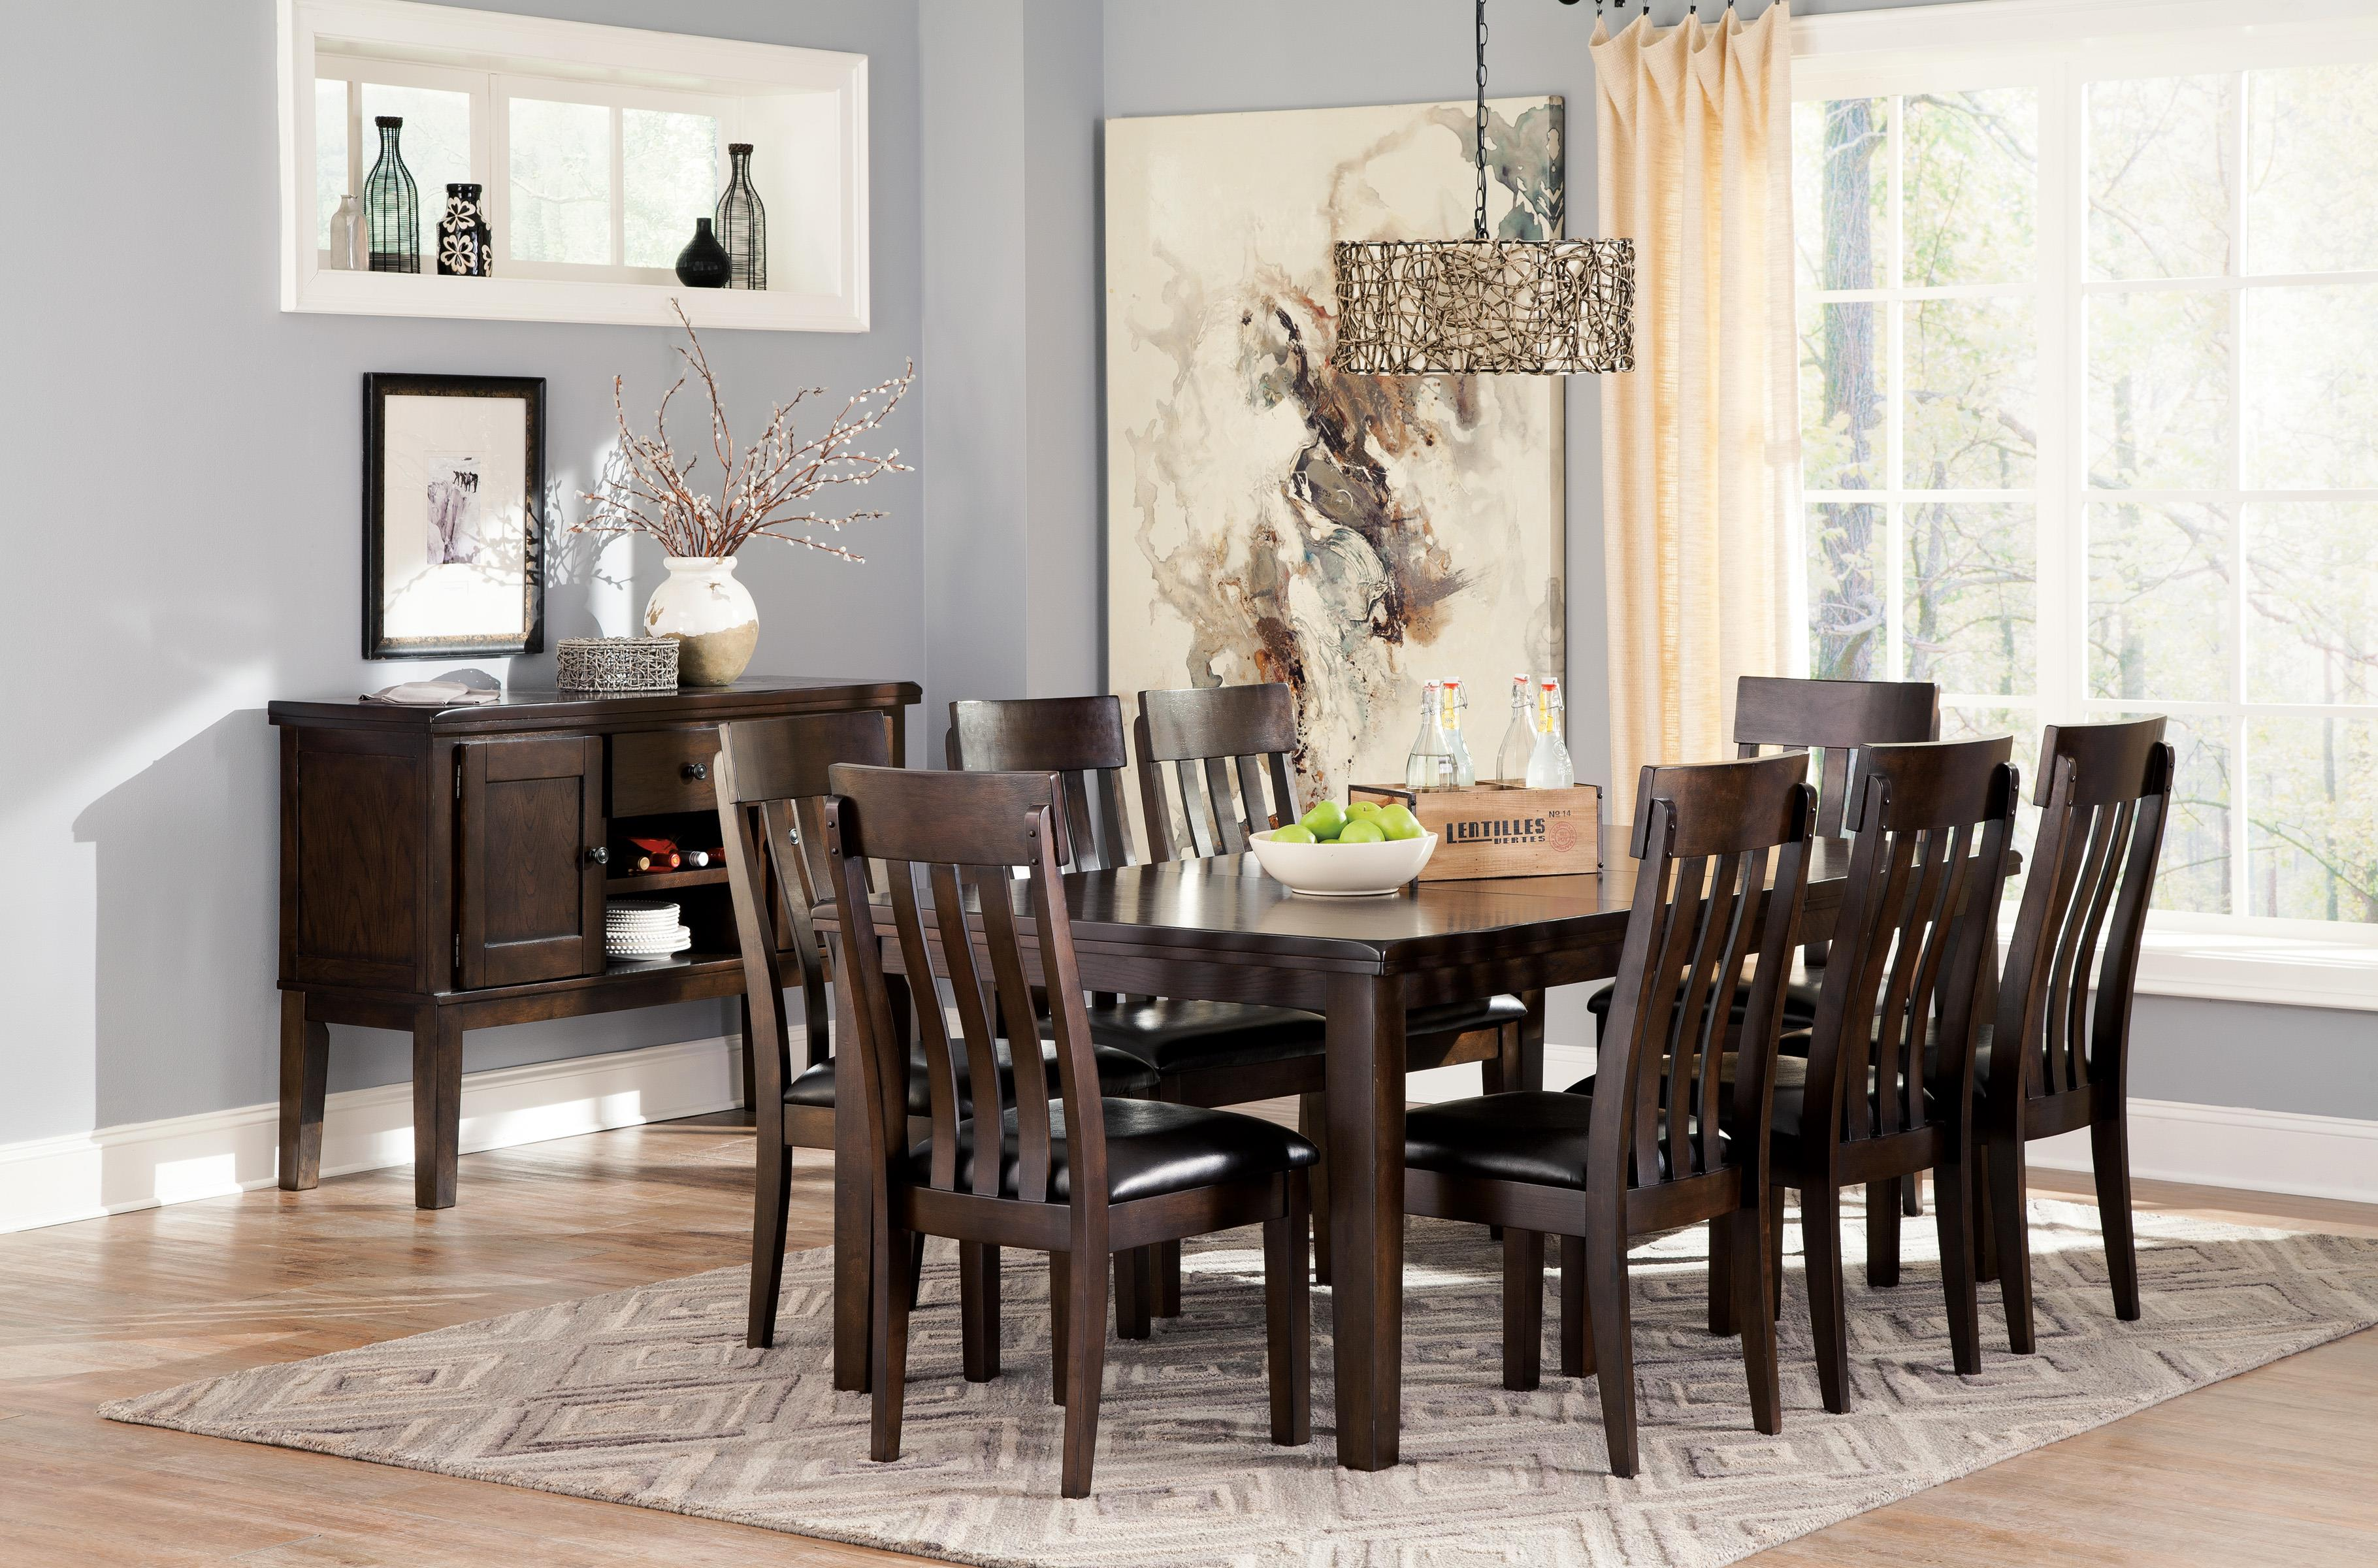 extra long dining room table sets. Dining Room Server Extra Long Table Sets